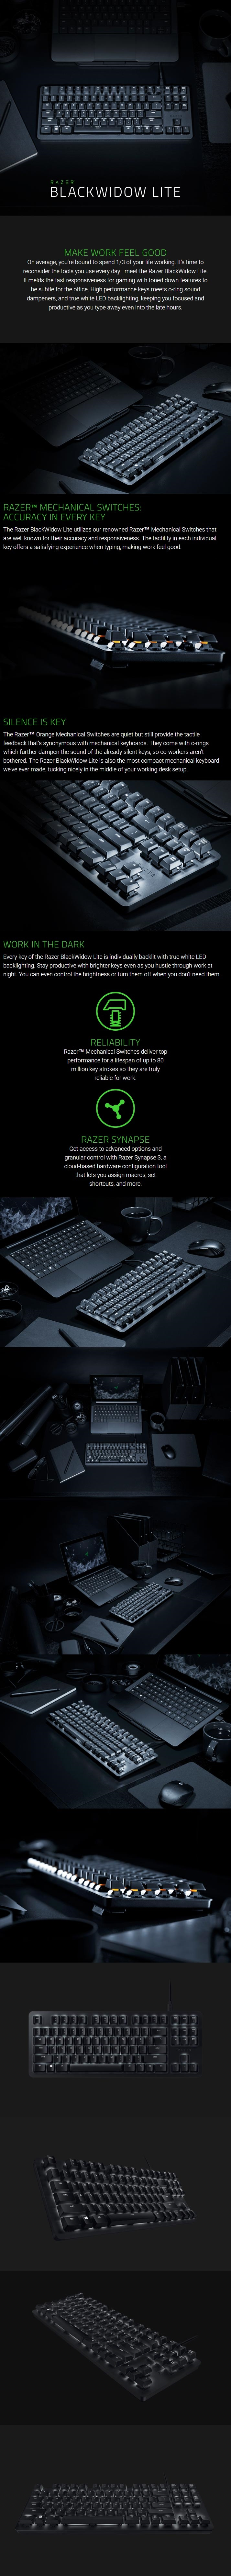 dee0a0bab17 Razer BlackWidow Lite - Silent Mechanical Gaming Keyboard (RZ03 ...